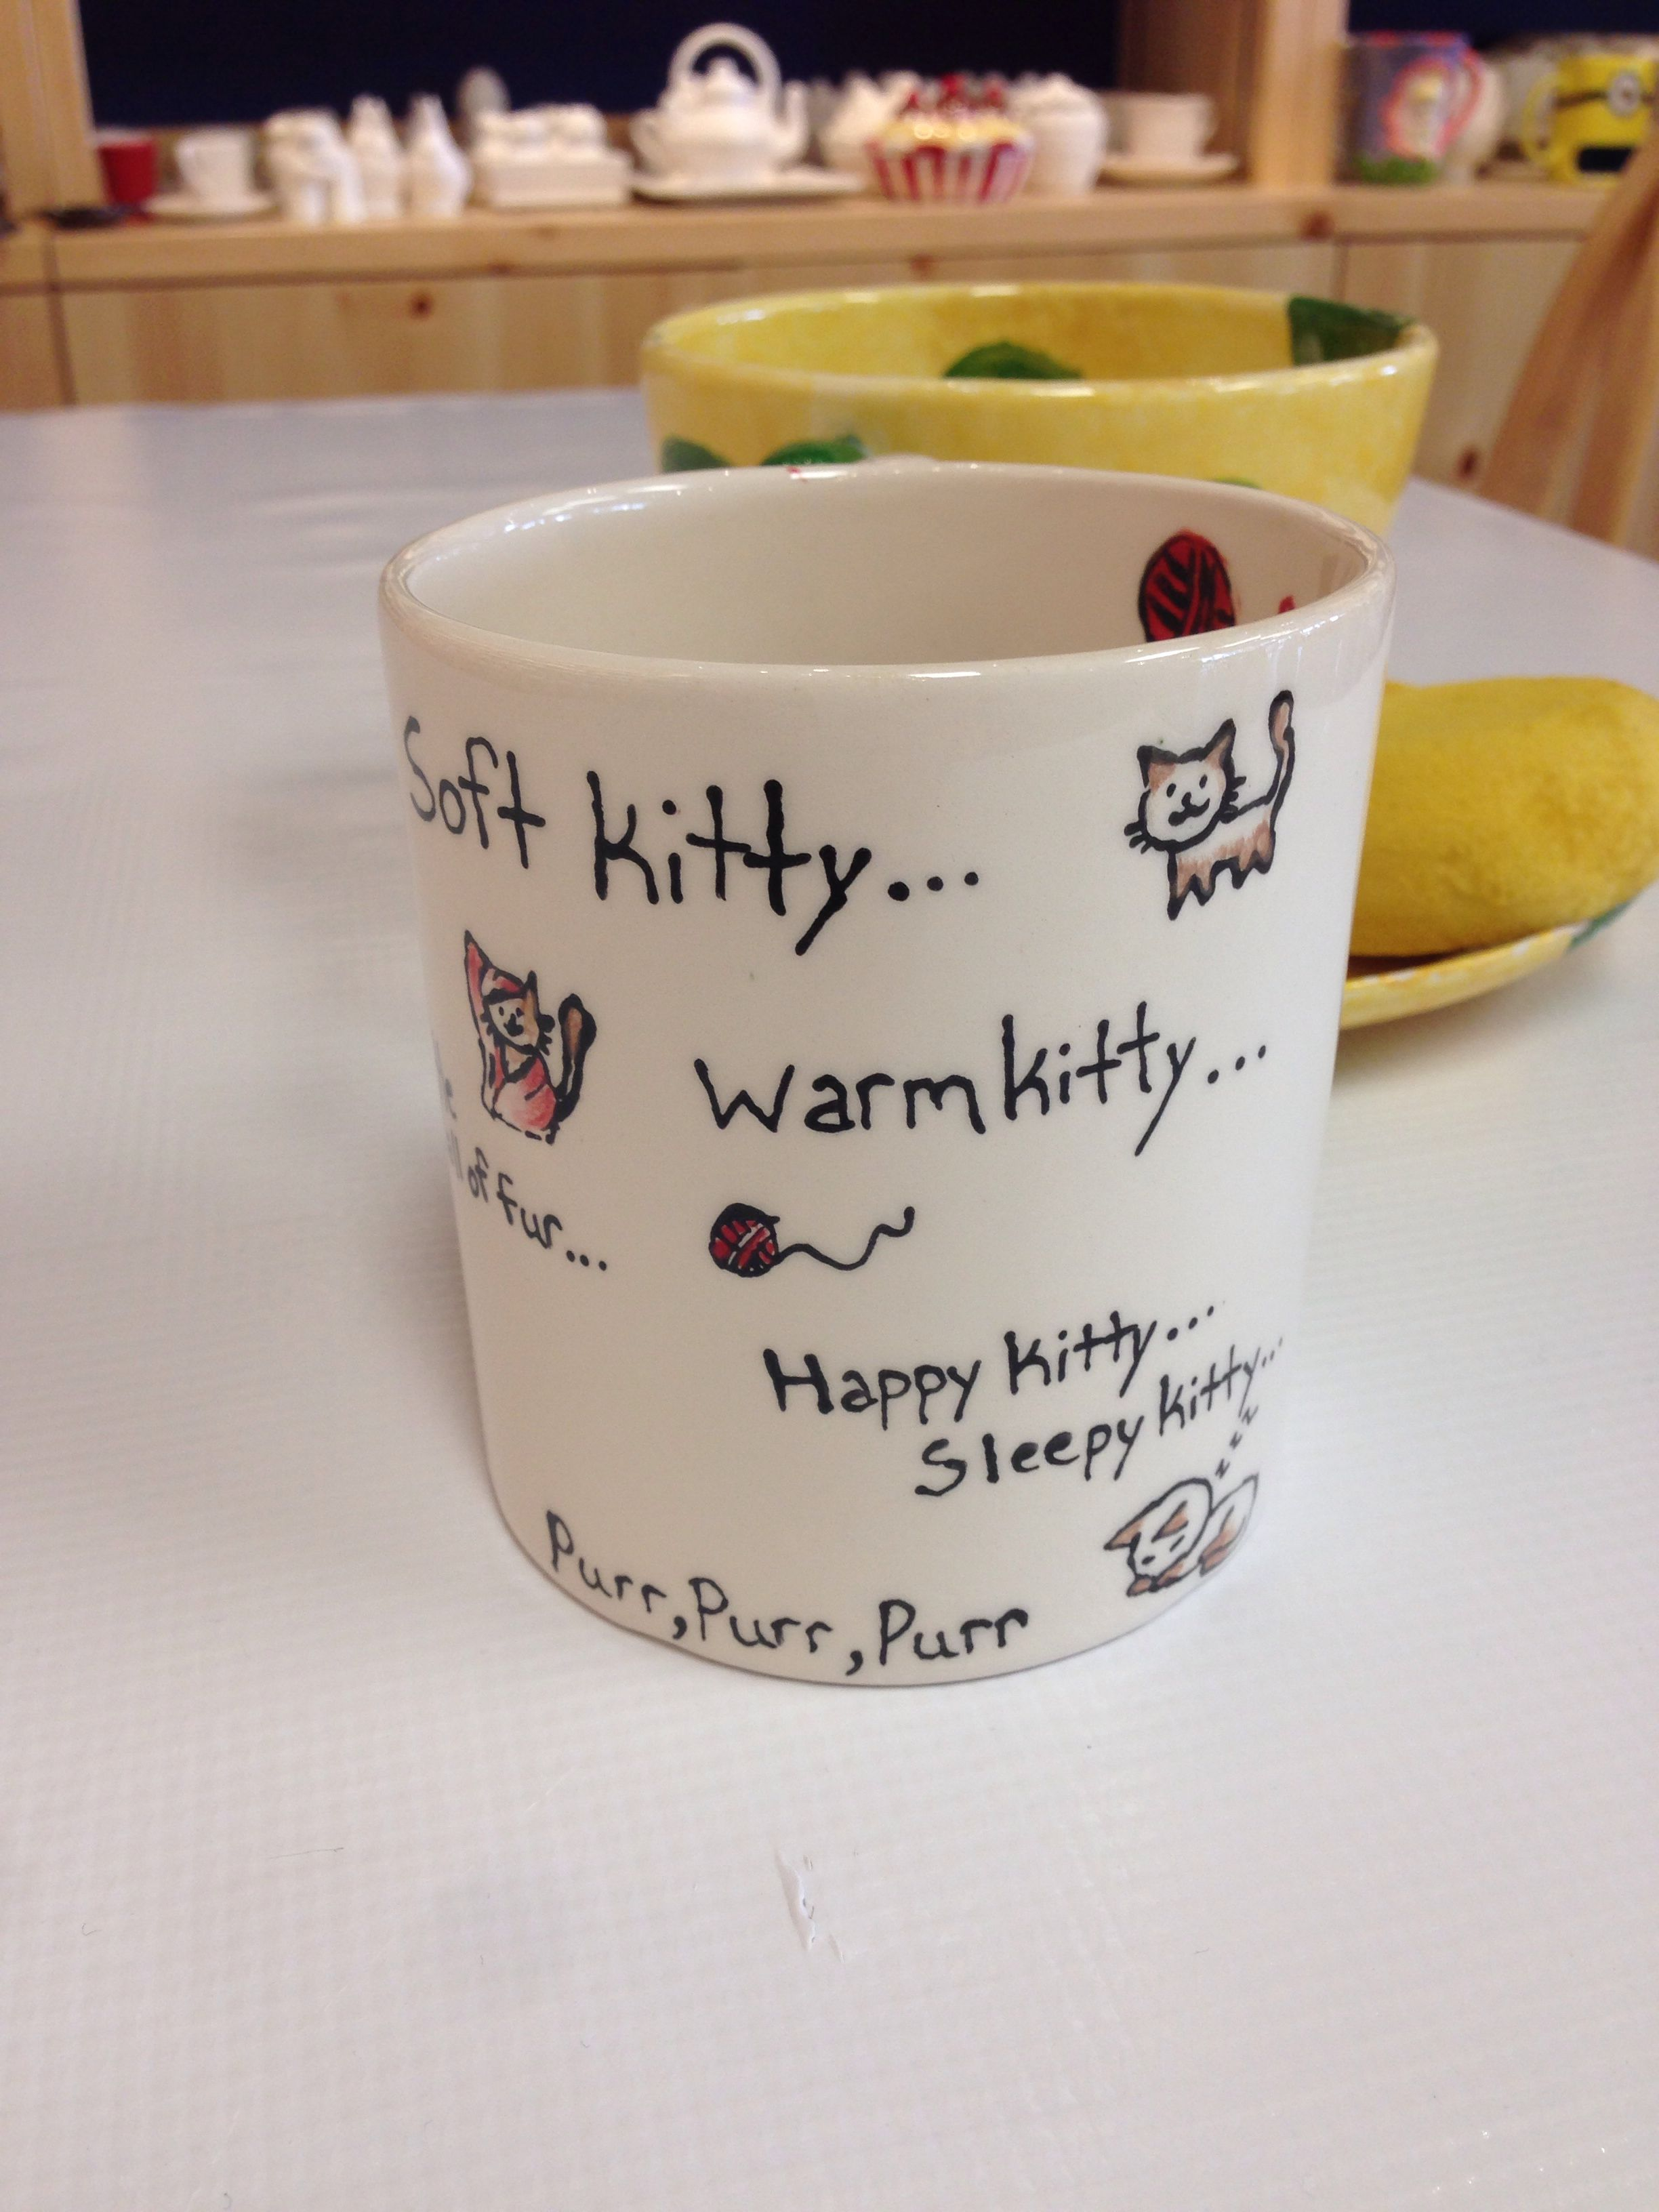 Cute kitty mug painted at color me mine pottery studio in